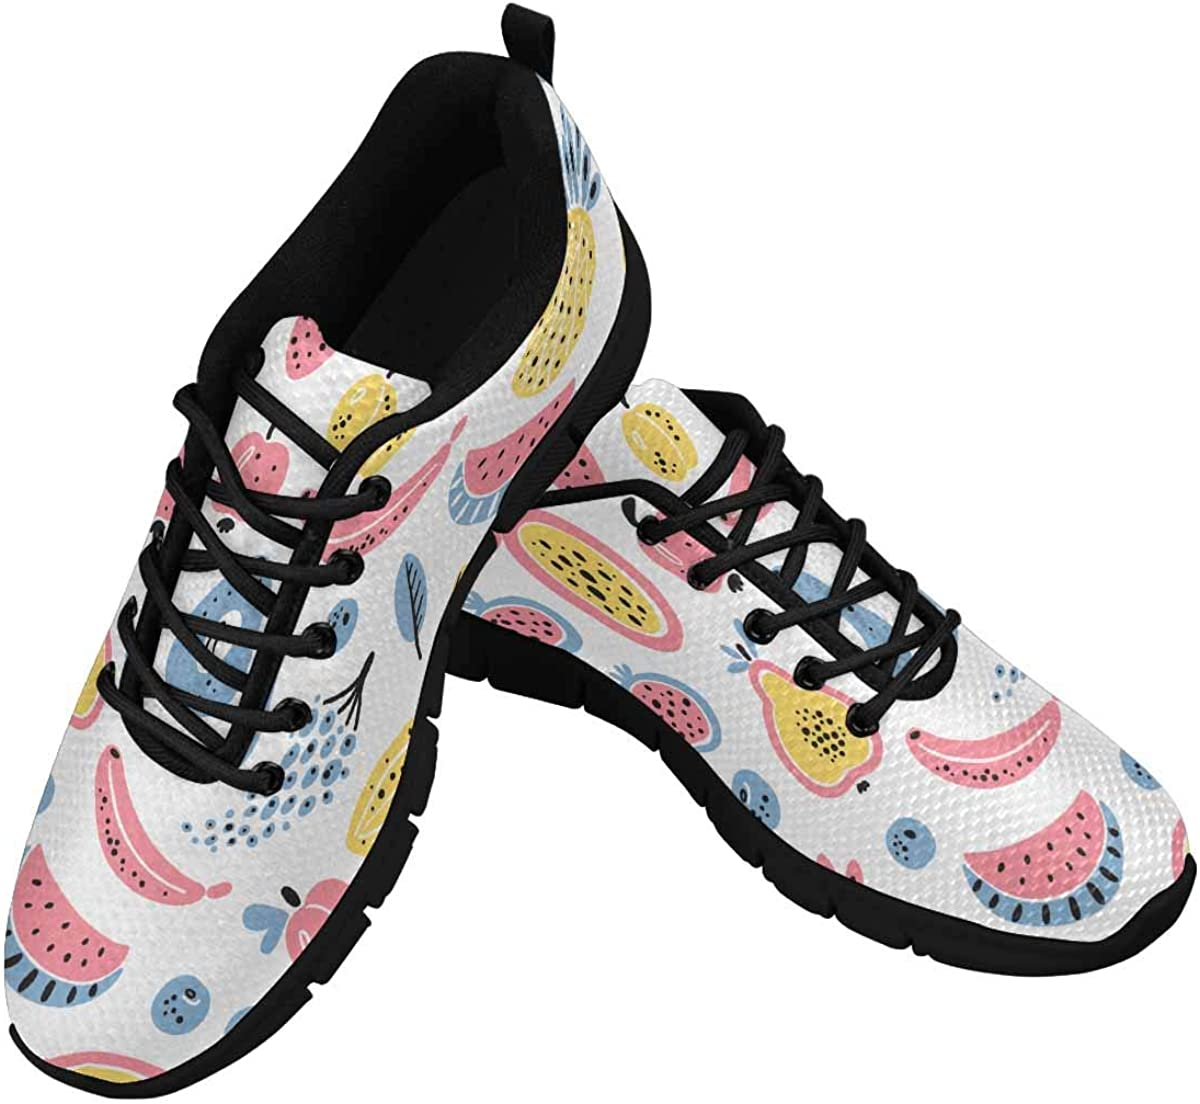 InterestPrint Cartoon Fruits and Berries Women's Breathable Comfort Mesh Fashion Sneakers